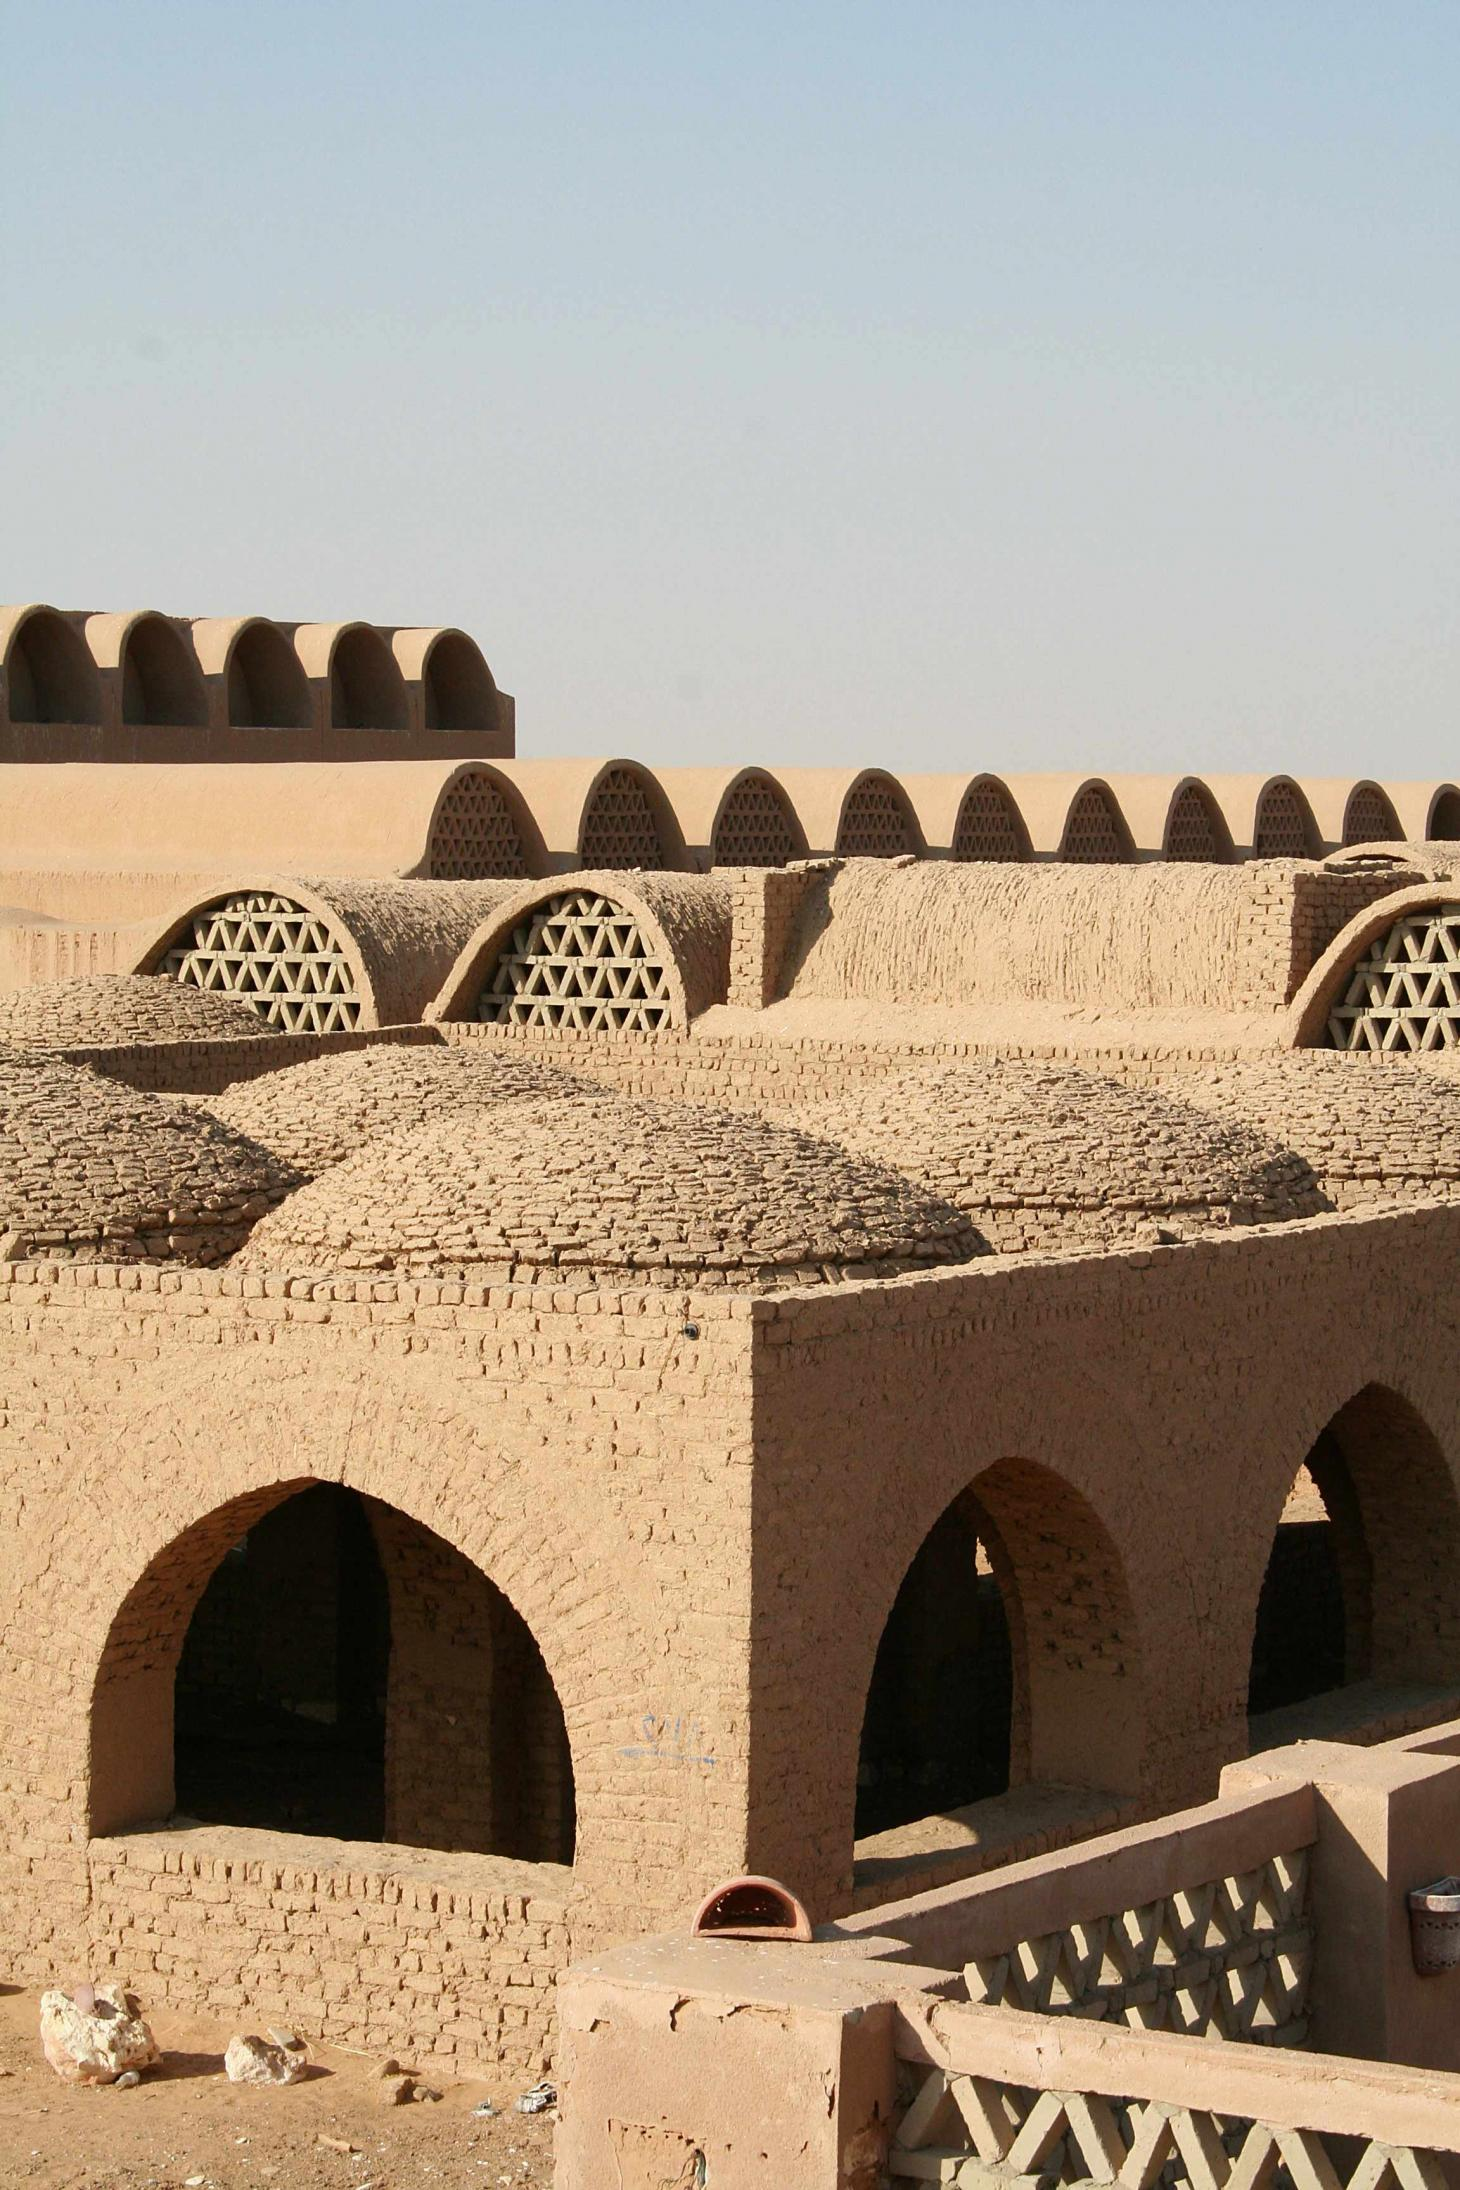 Hassan Fathy architecture in Egypt